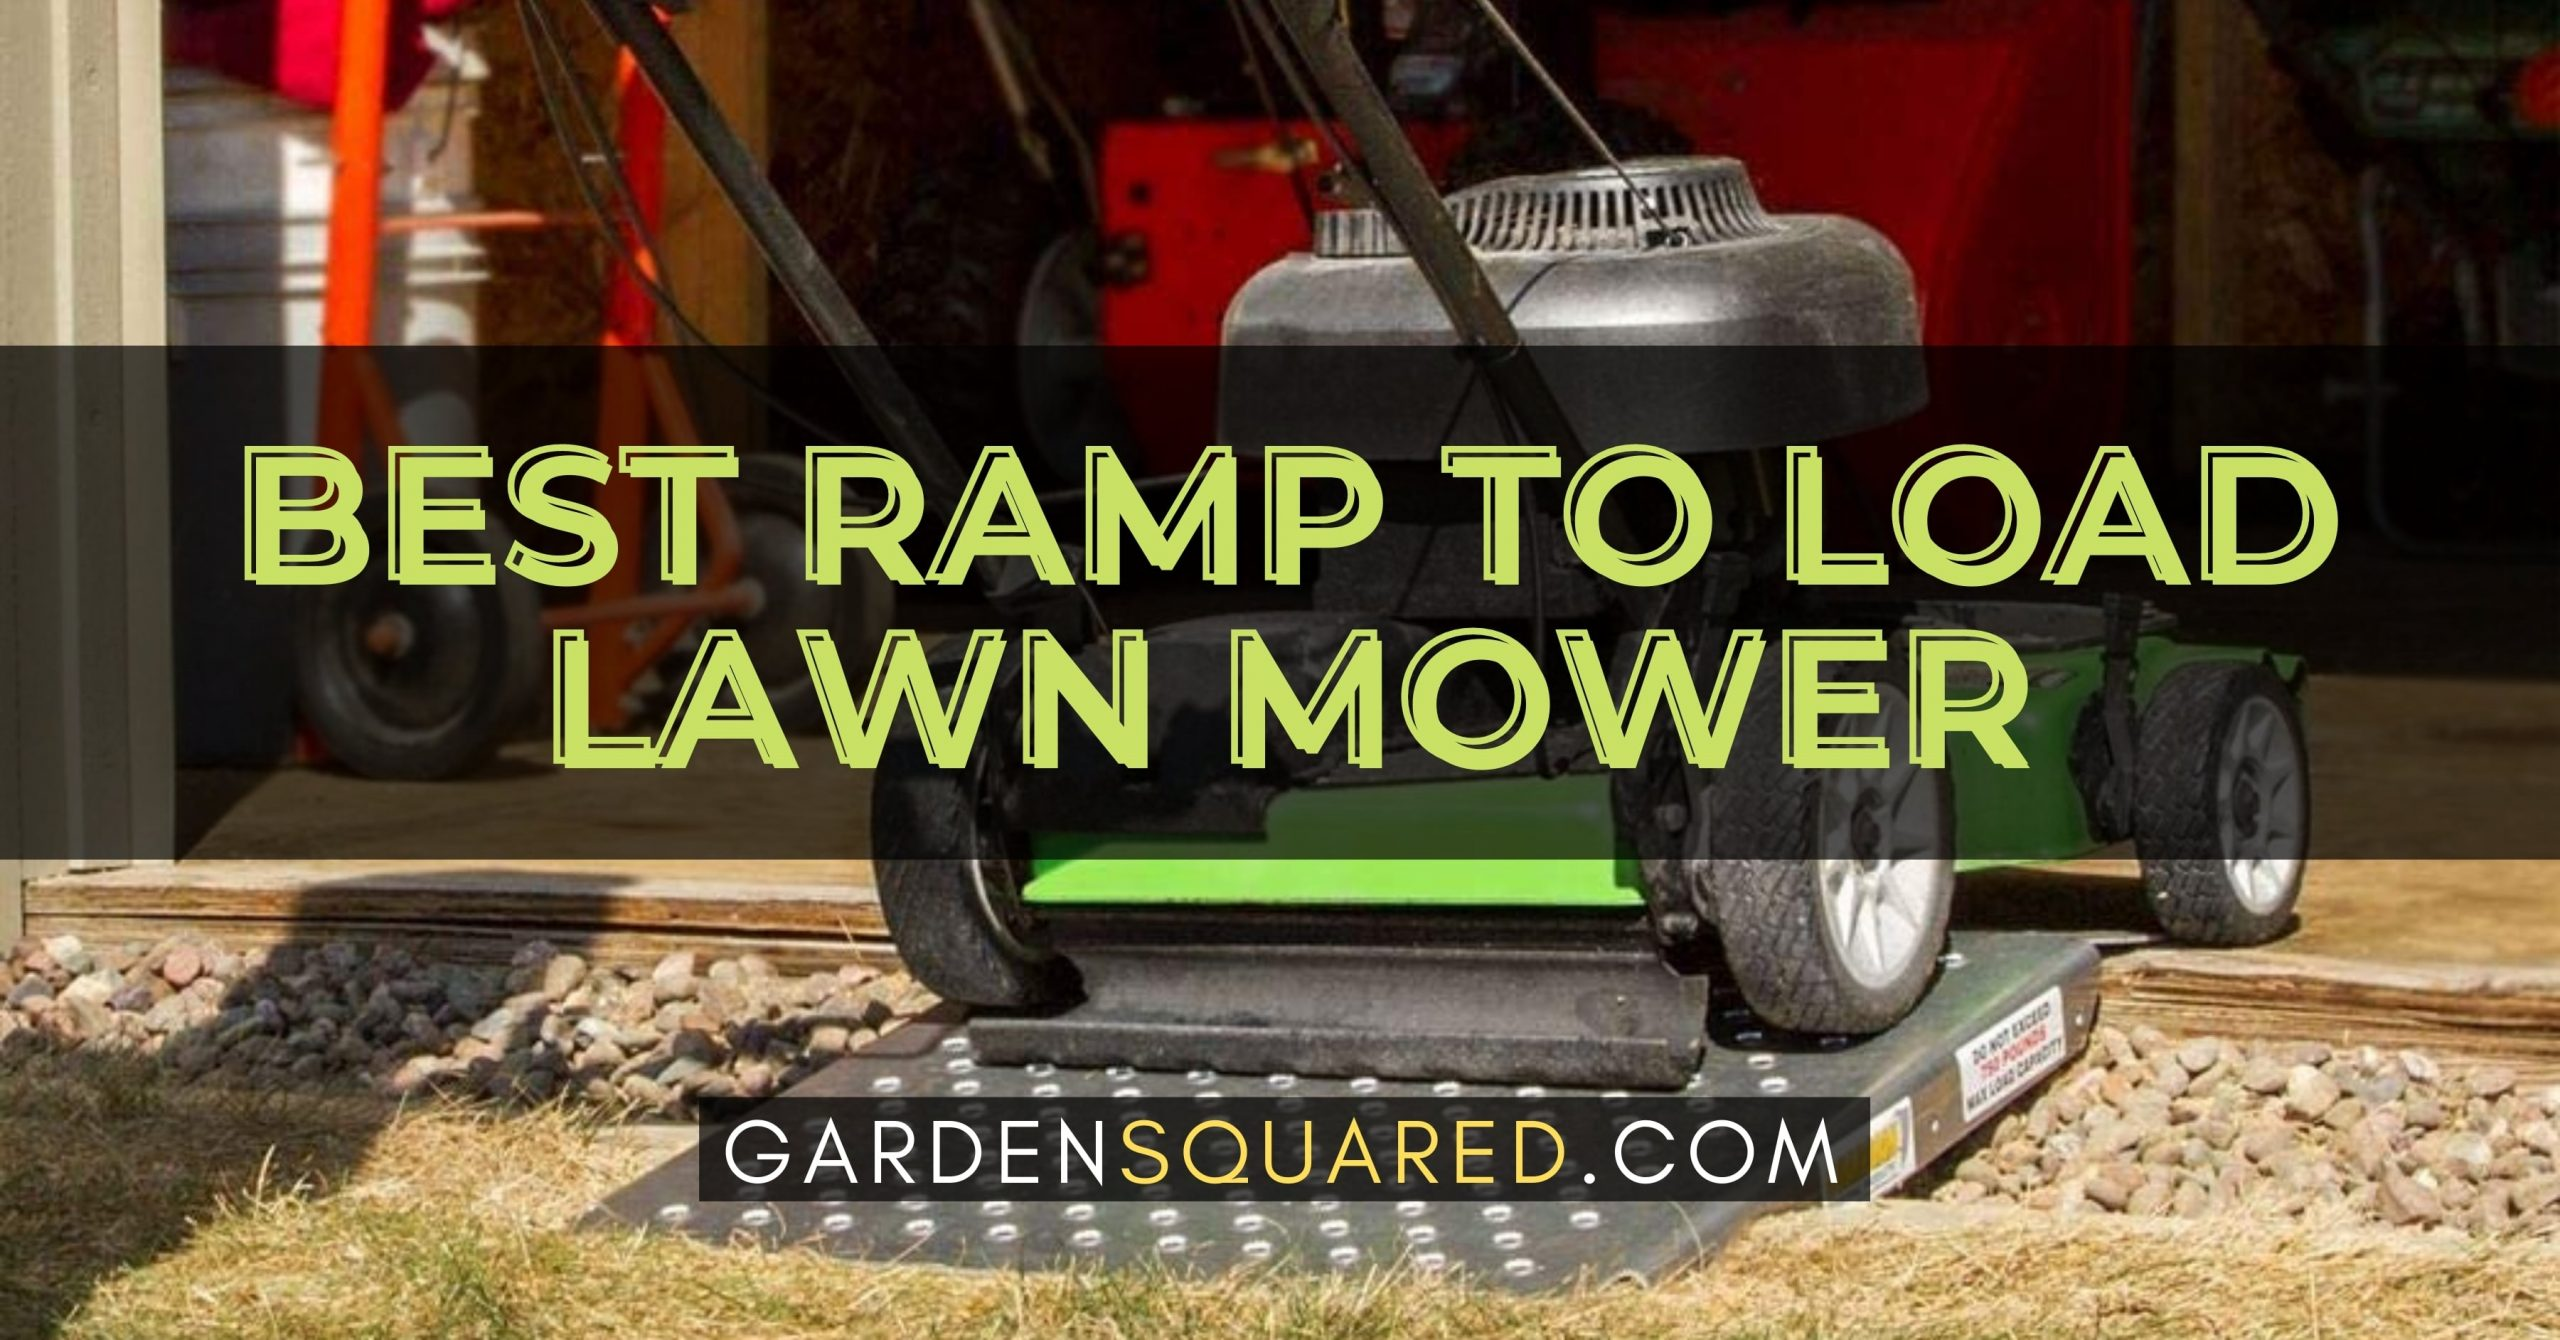 The Best Ramps To Load Lawn Mower